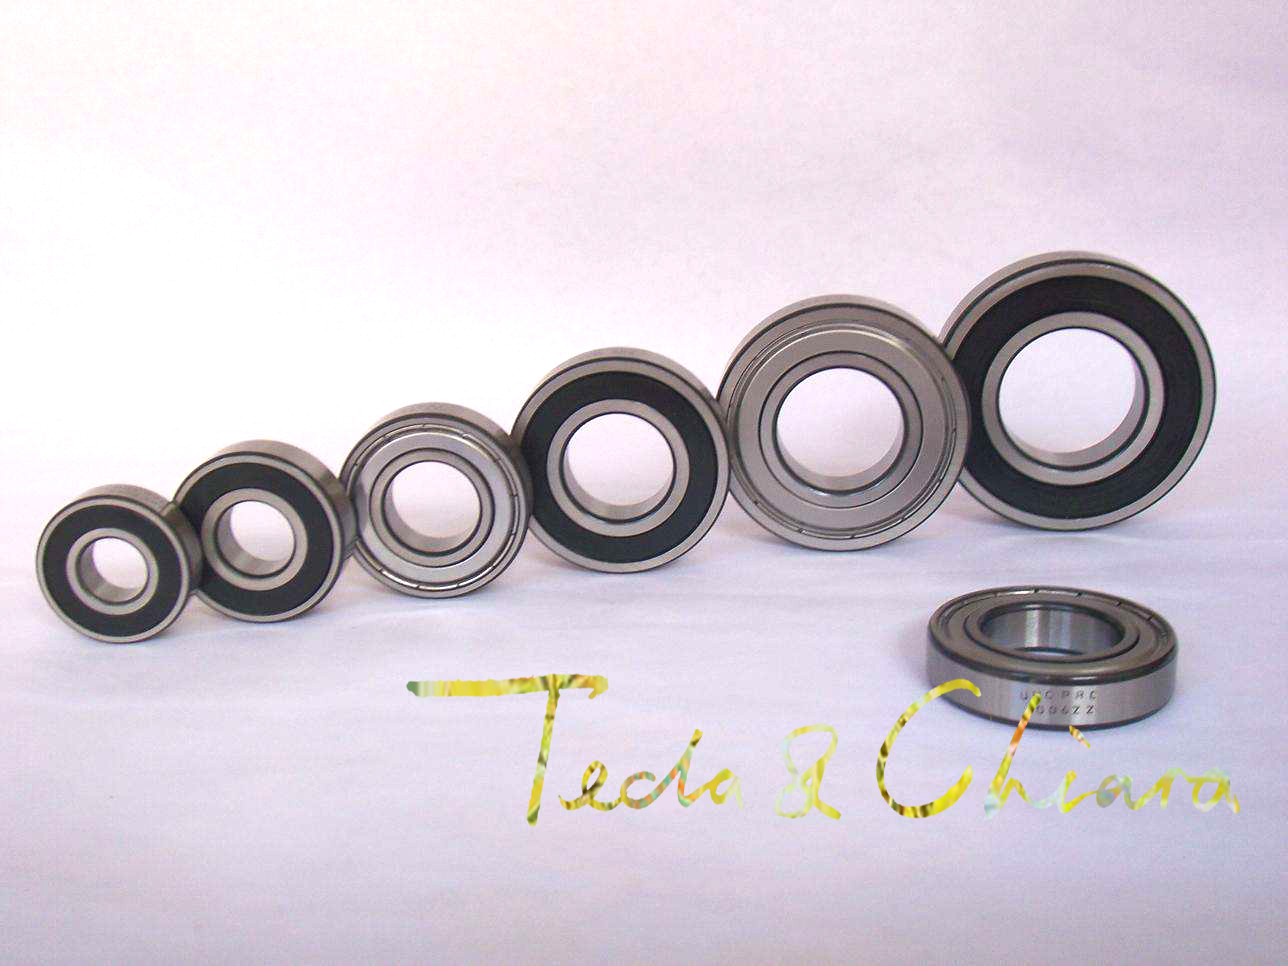 6301 6301ZZ 6301RS 6301-2Z 6301Z 6301-2RS ZZ RS RZ 2RZ Deep Groove Ball Bearings 12 x 37 x 12mm High Quality gs 6301 hd купить во владимире